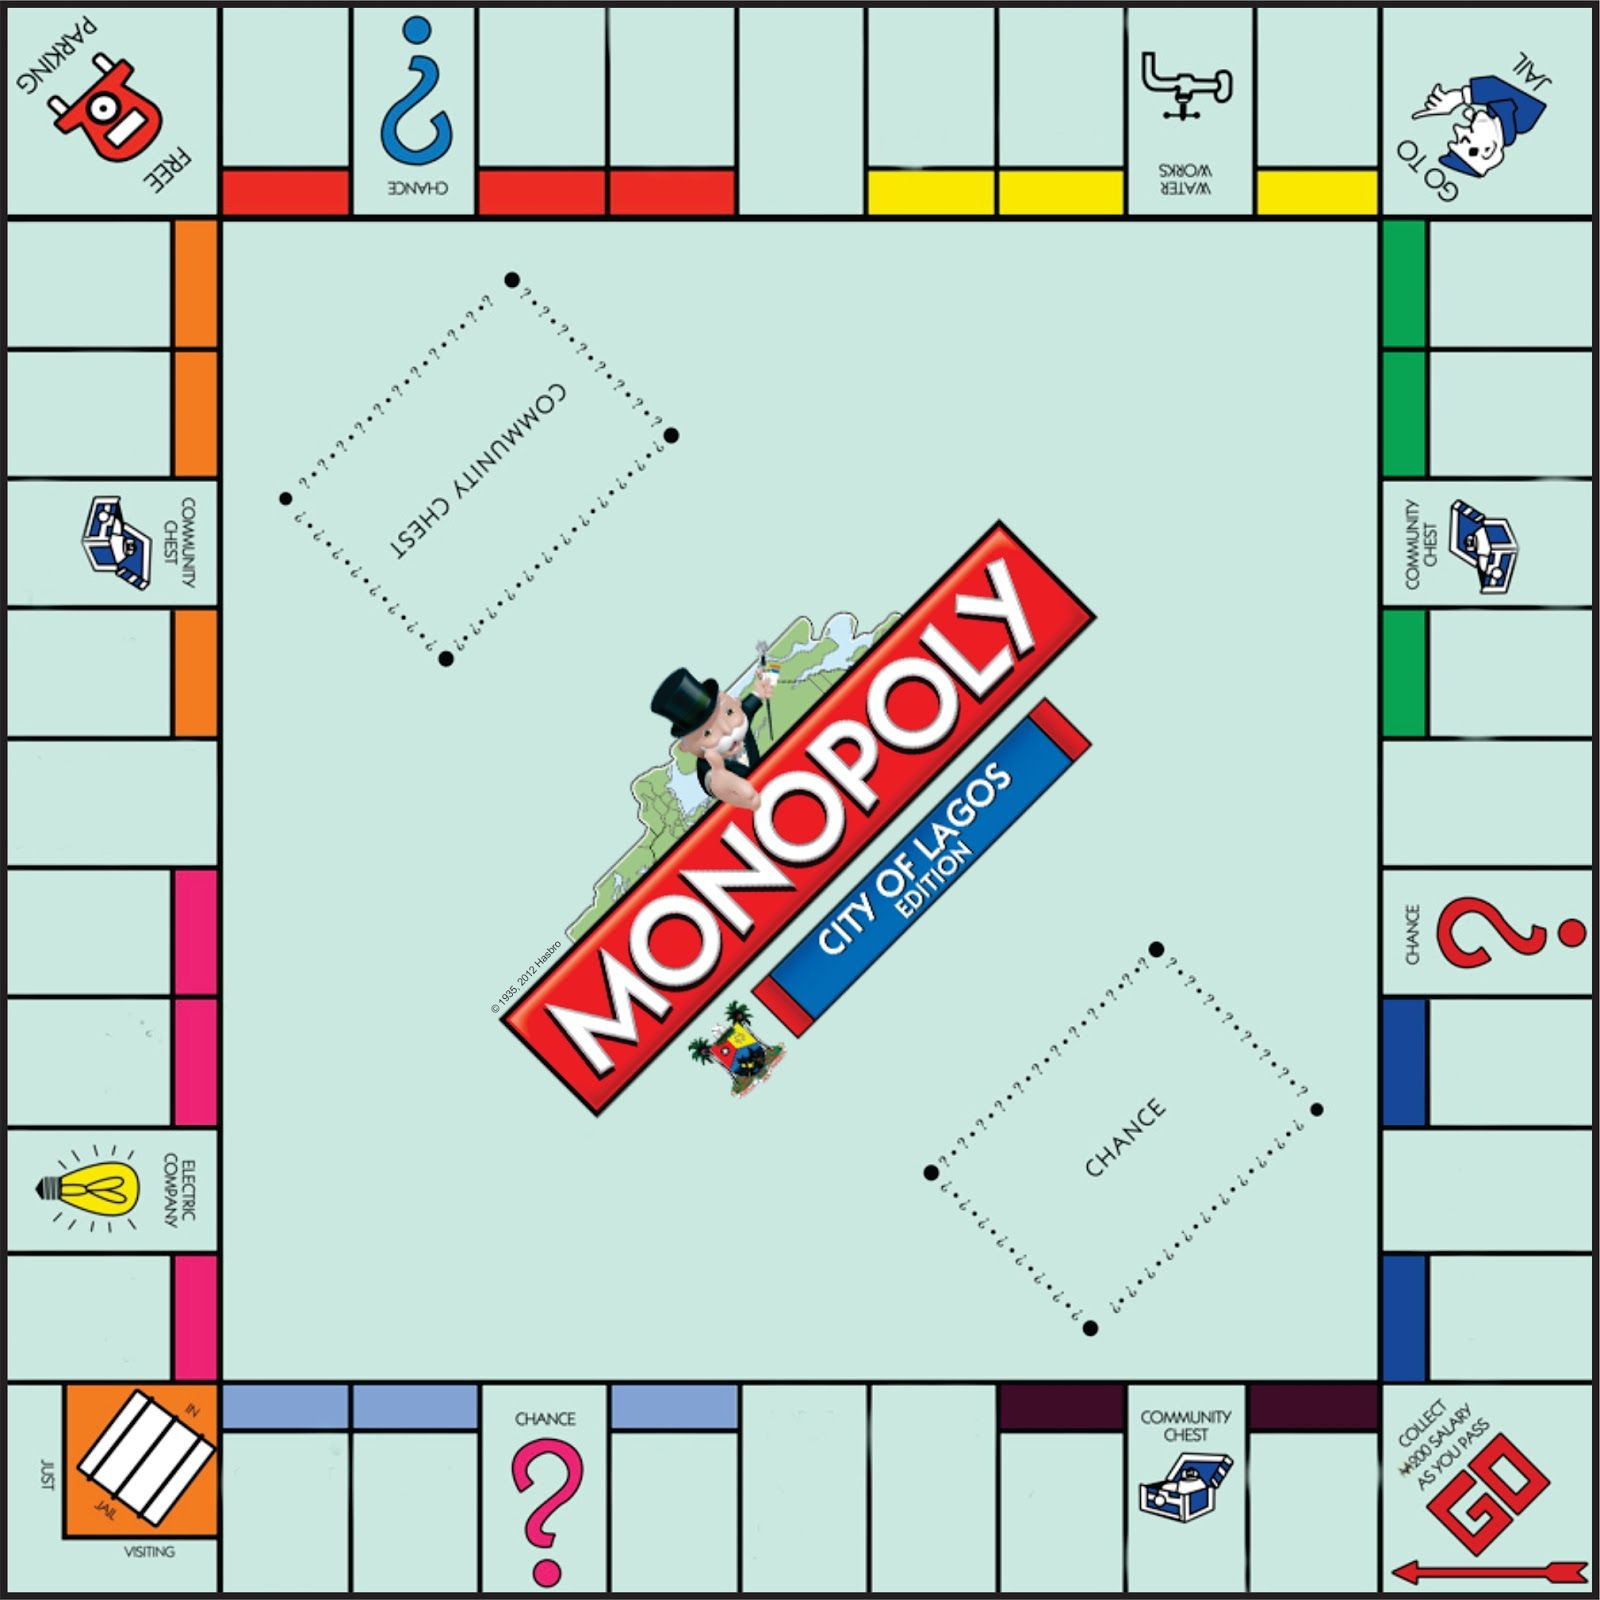 Pin by Larry McDoug on Monopoly board games | Pinterest | Monopoly ...